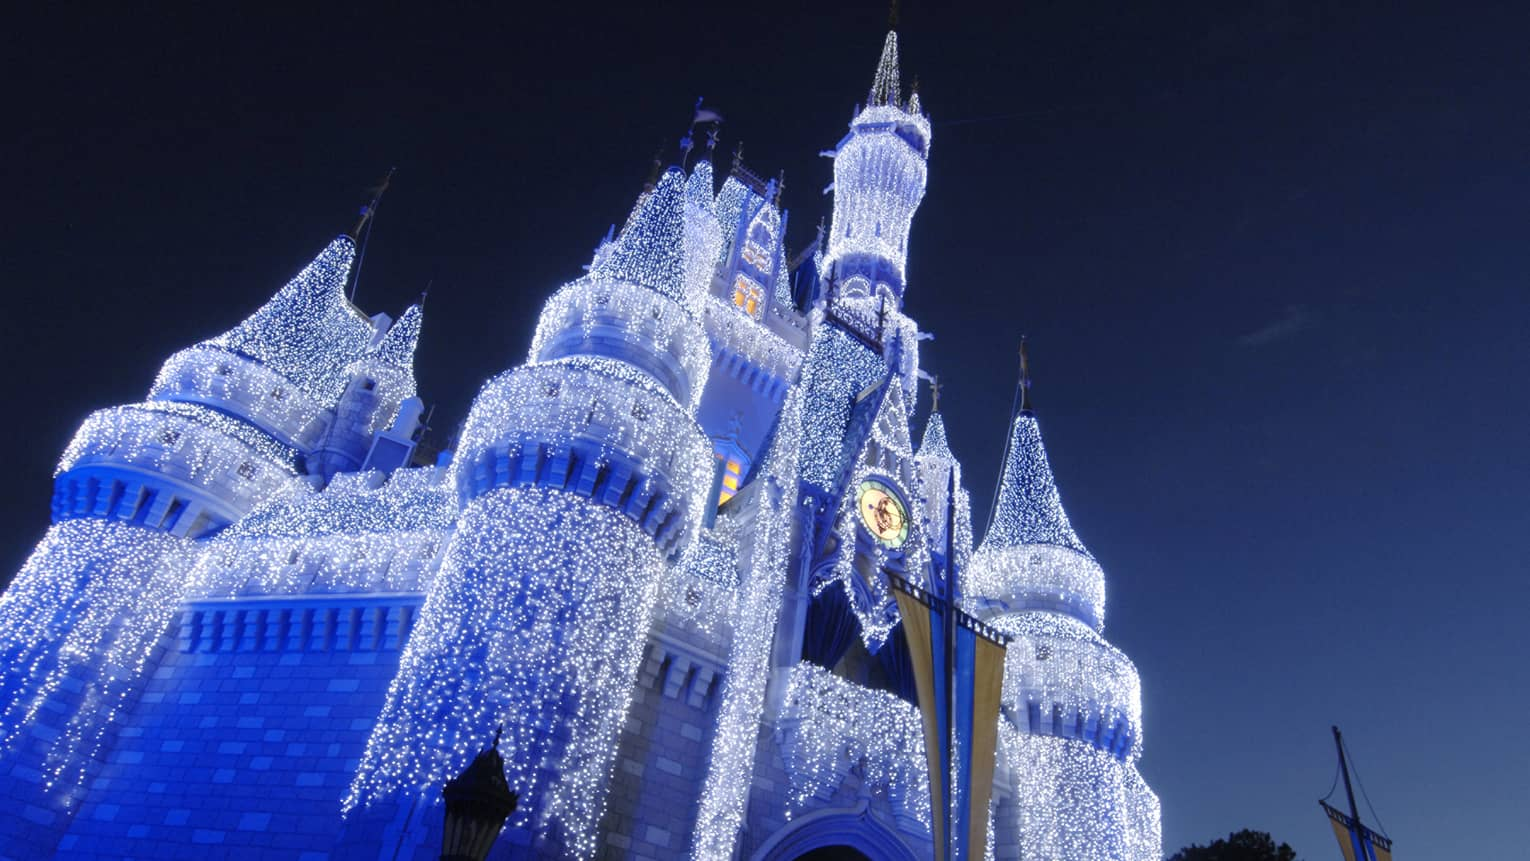 Cinderella's Castle is aglow with bright blue lights